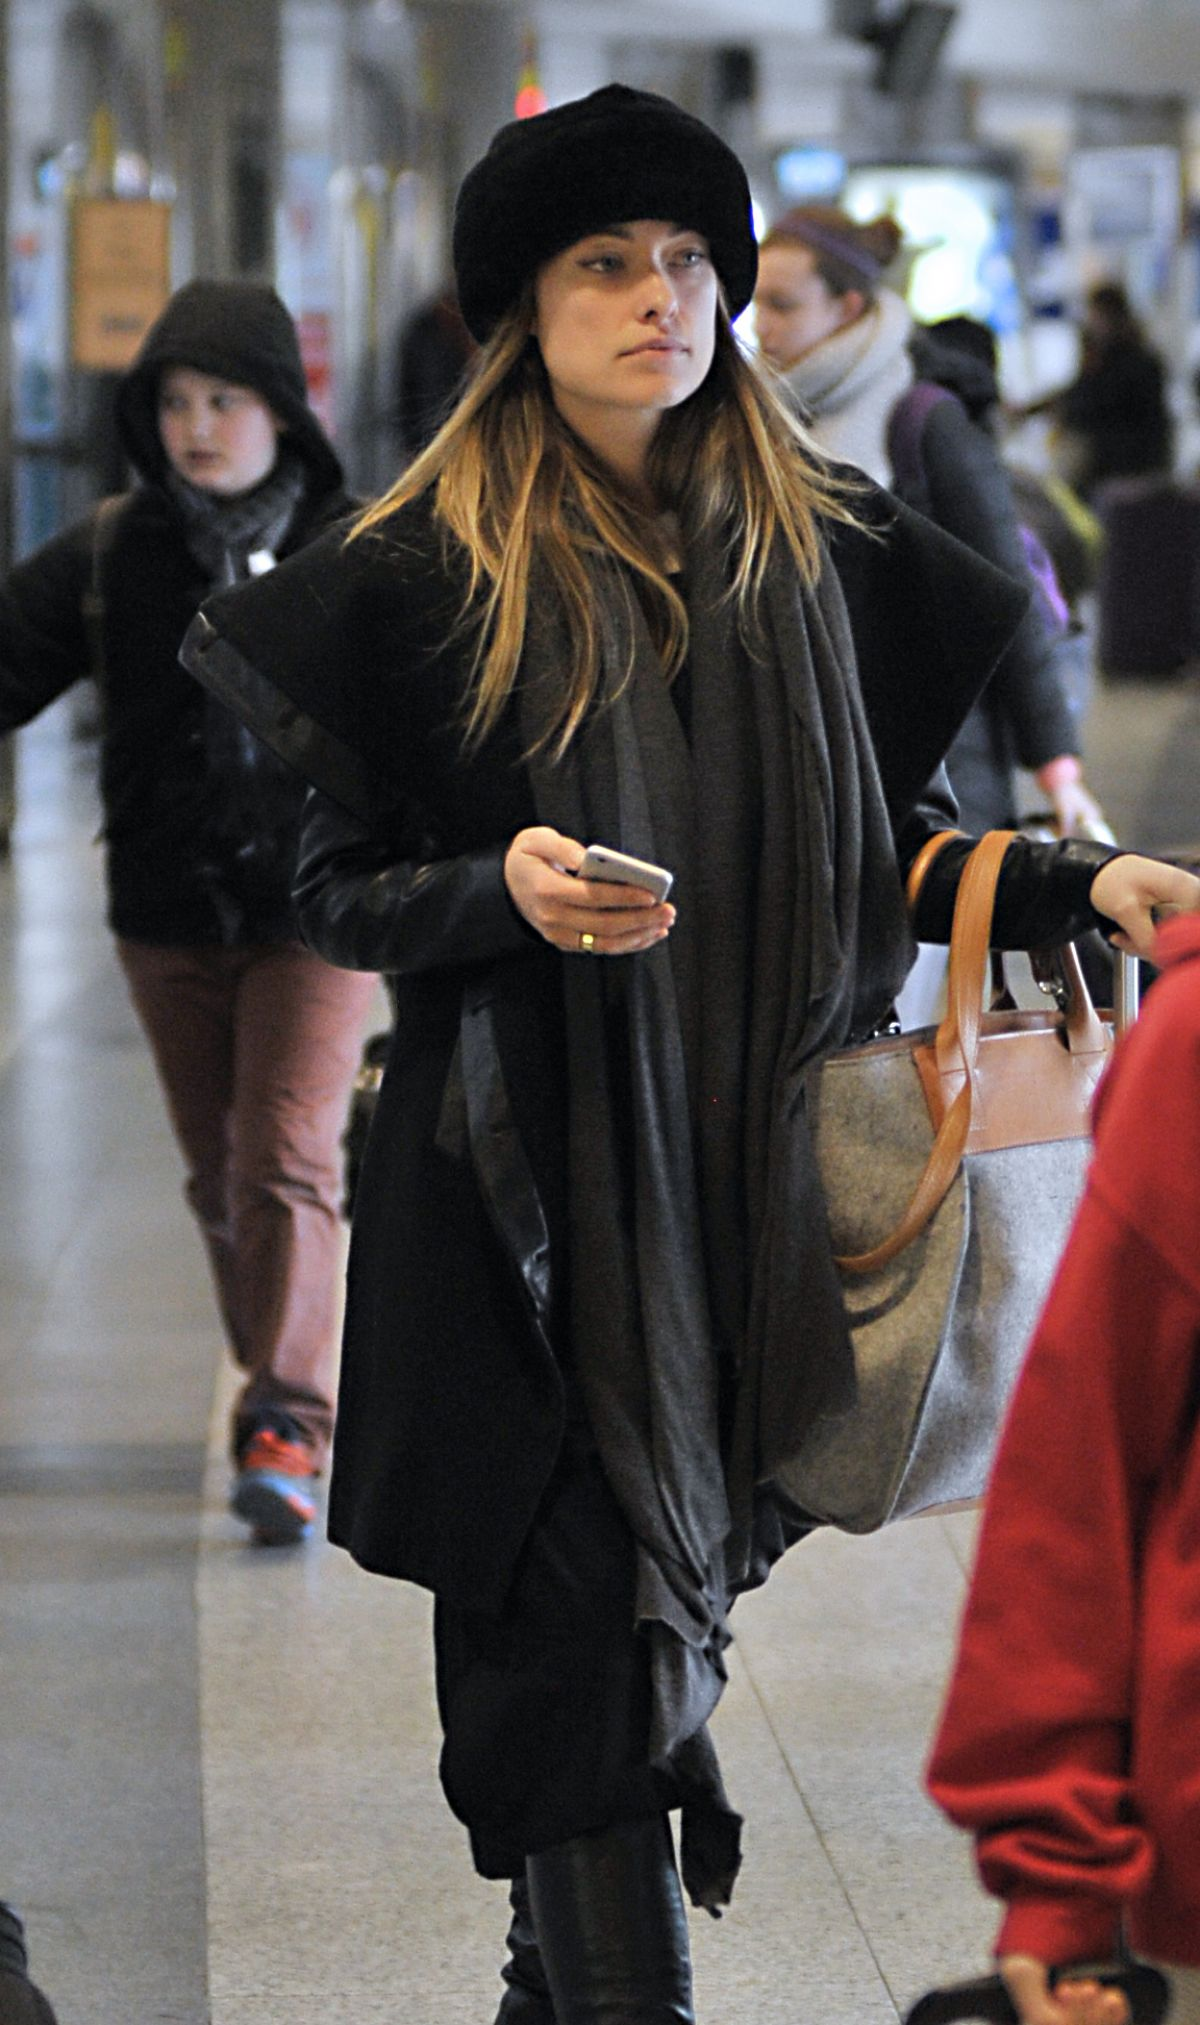 OLIVIA WILDE at JFK Airport in New York 02/13/2016